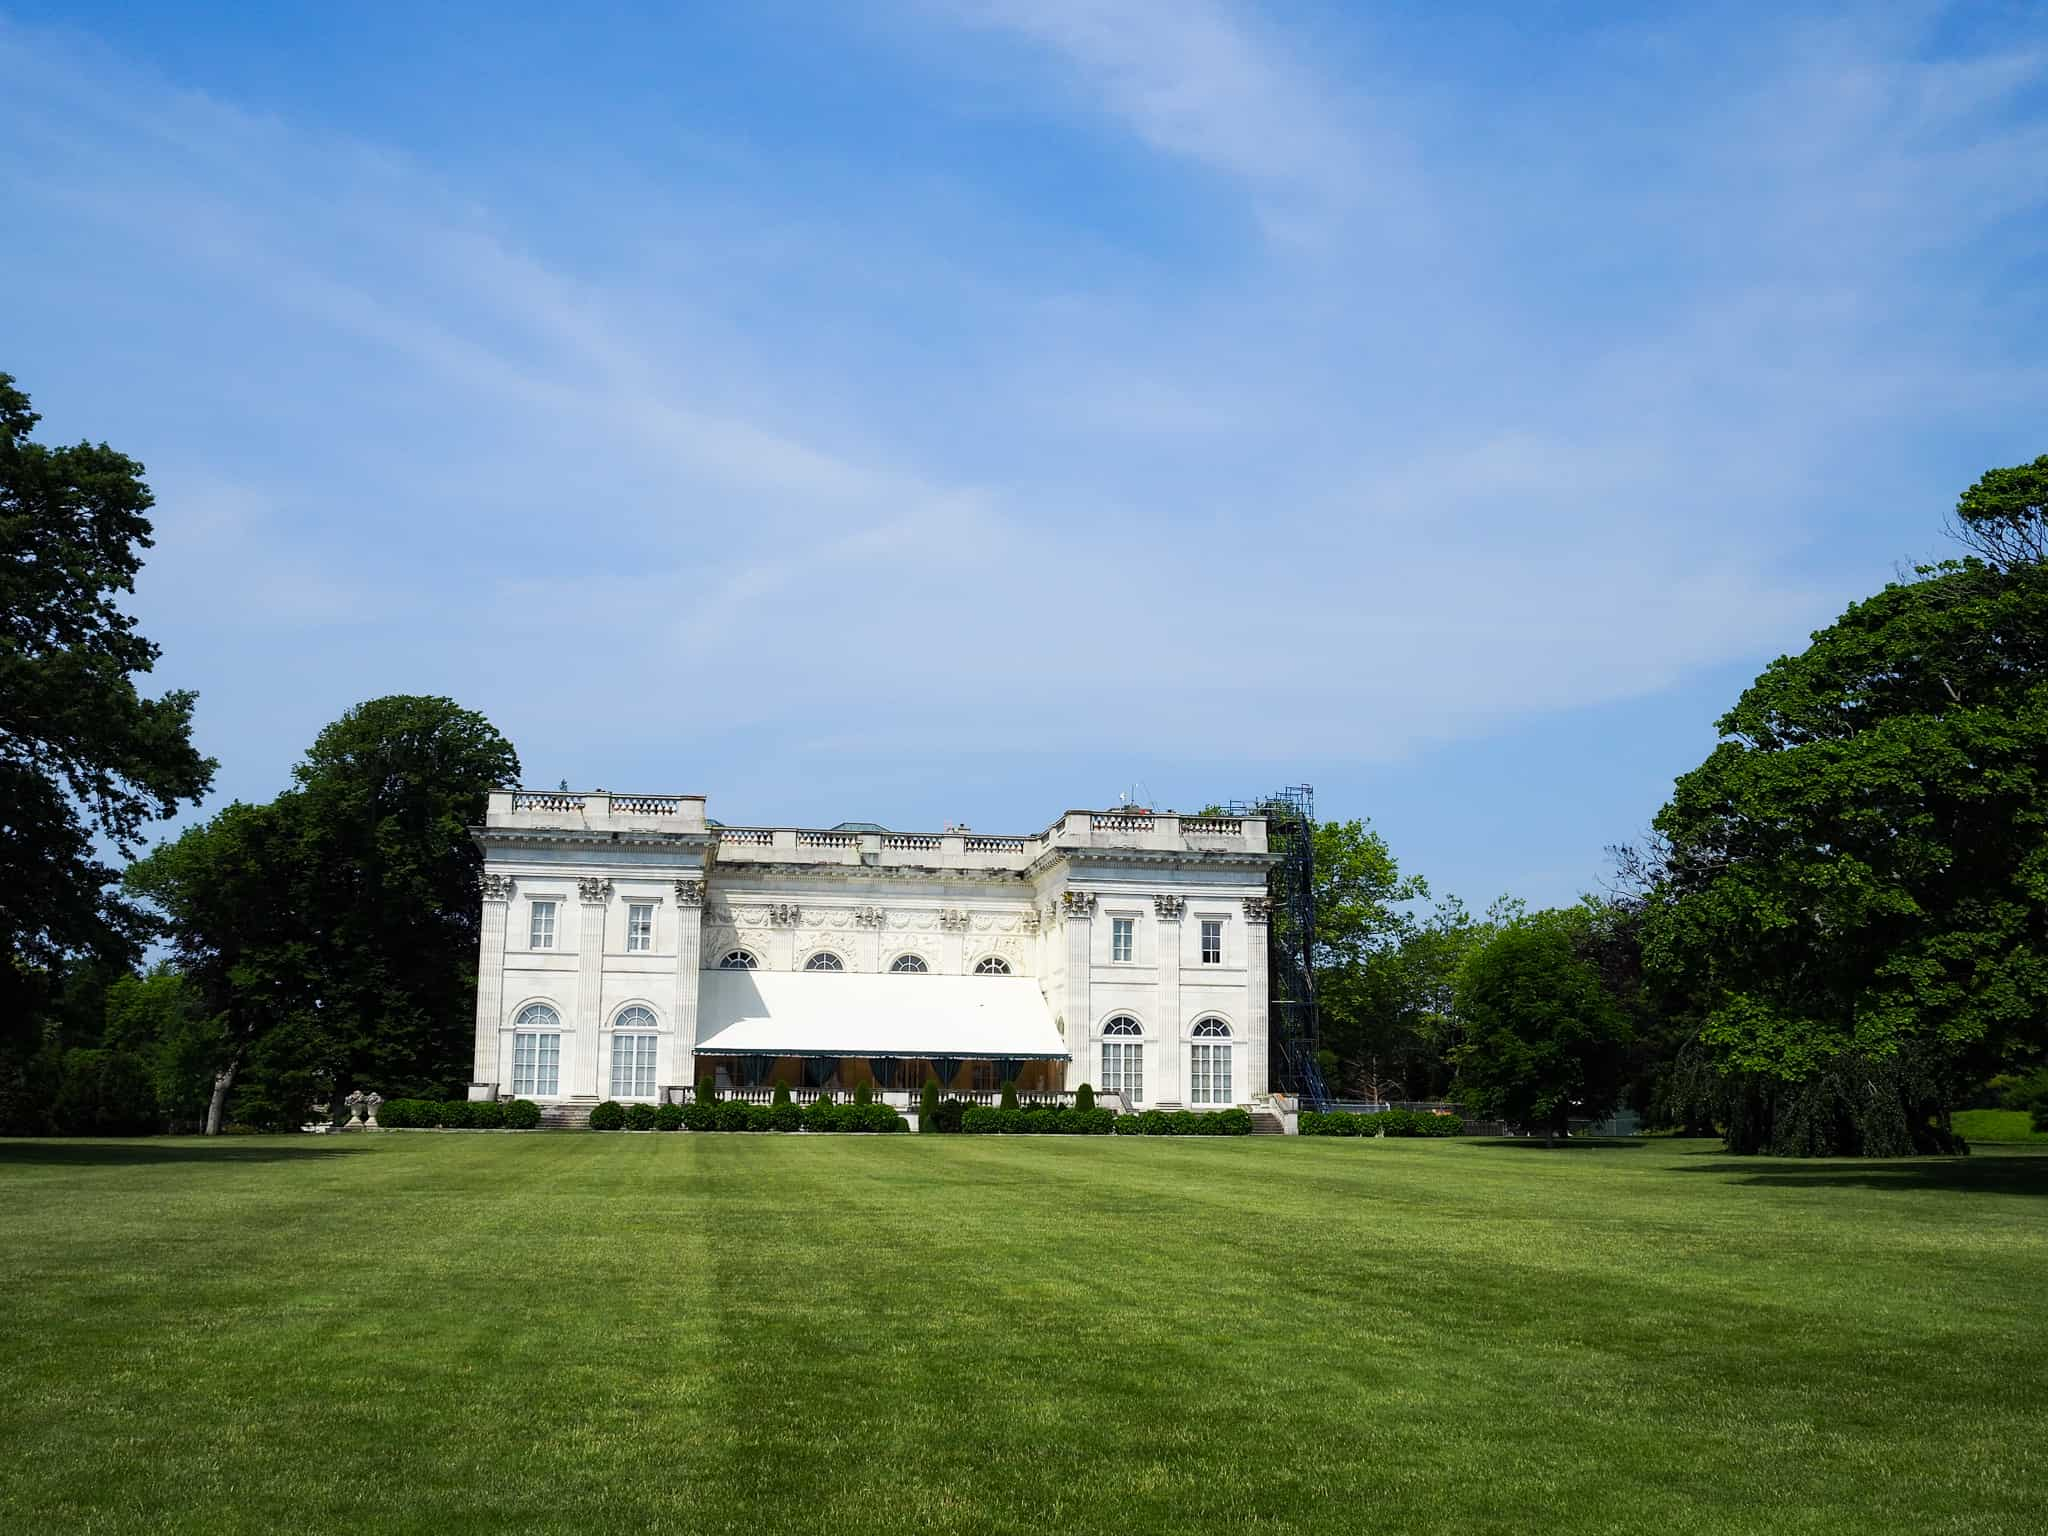 The Marble House mansion in Newport, Rhode Island.